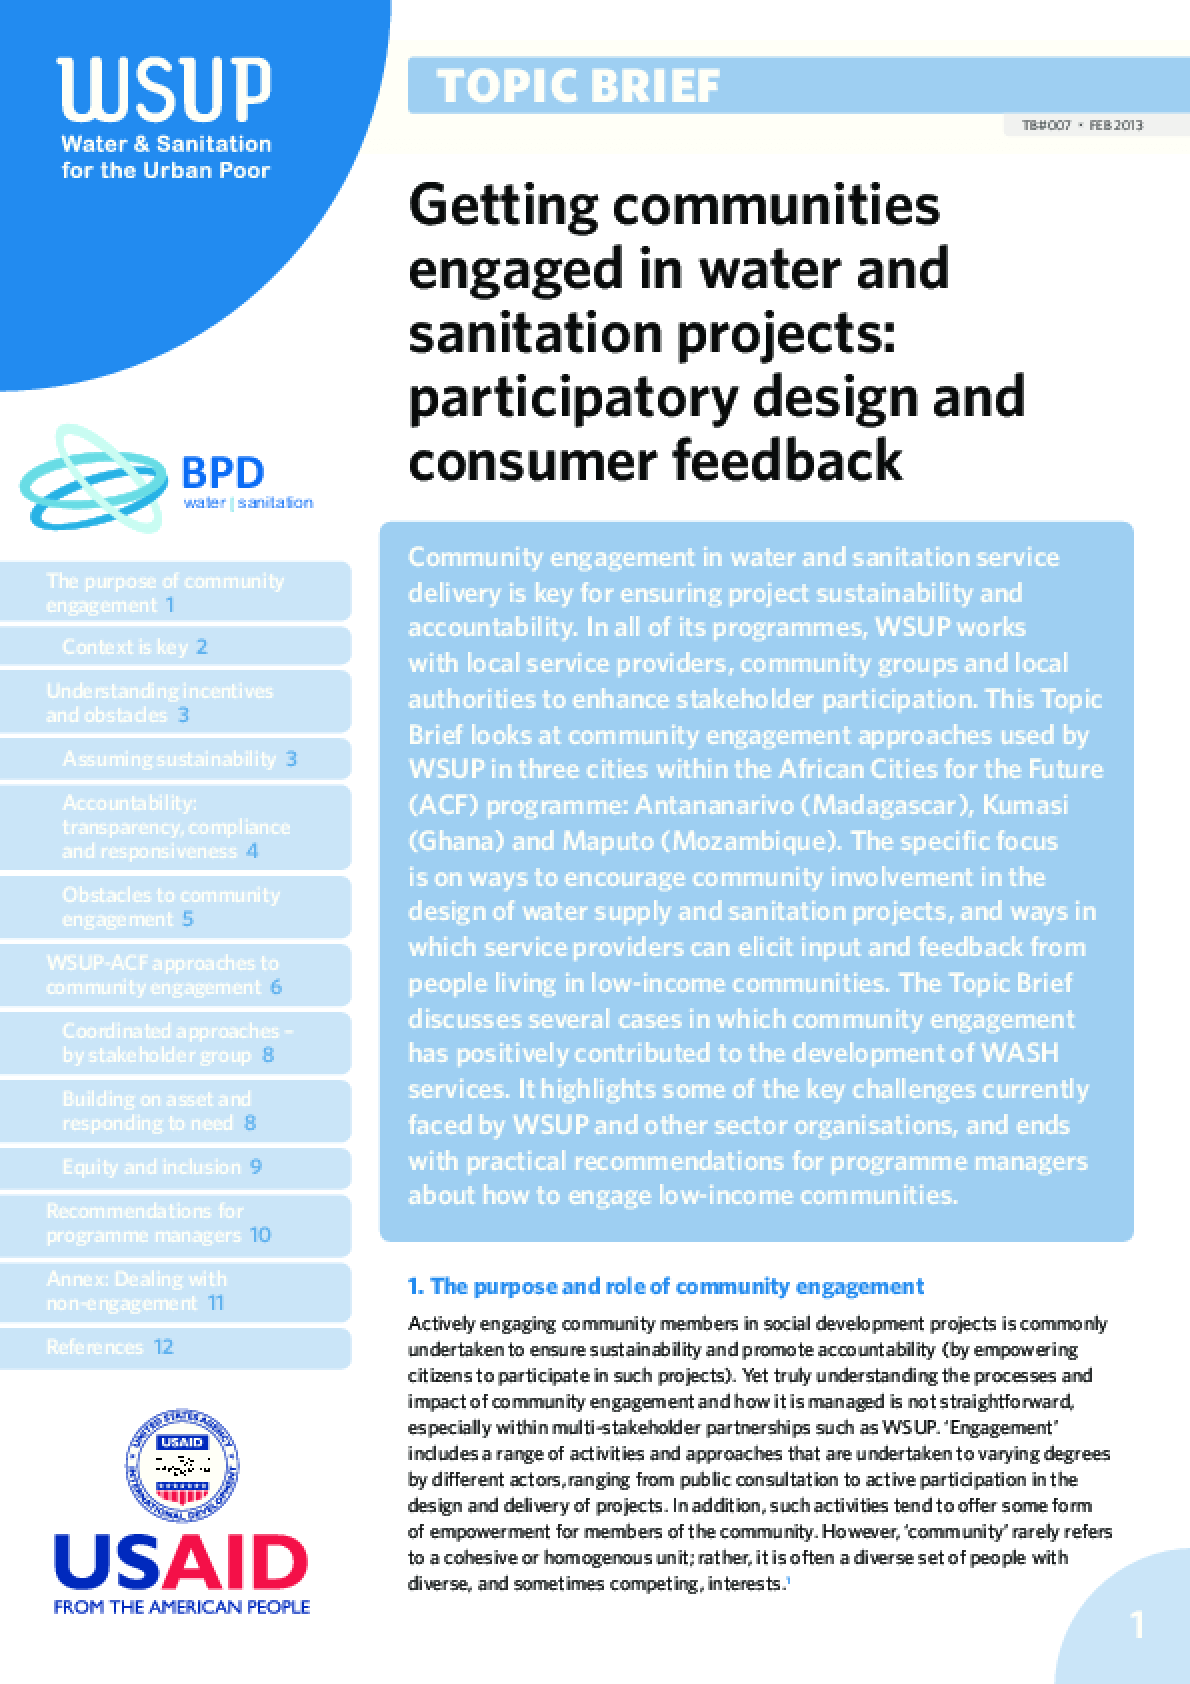 Getting Communities Engaged in Water and Sanitation Projects: Participatory Design and Consumer Feedback